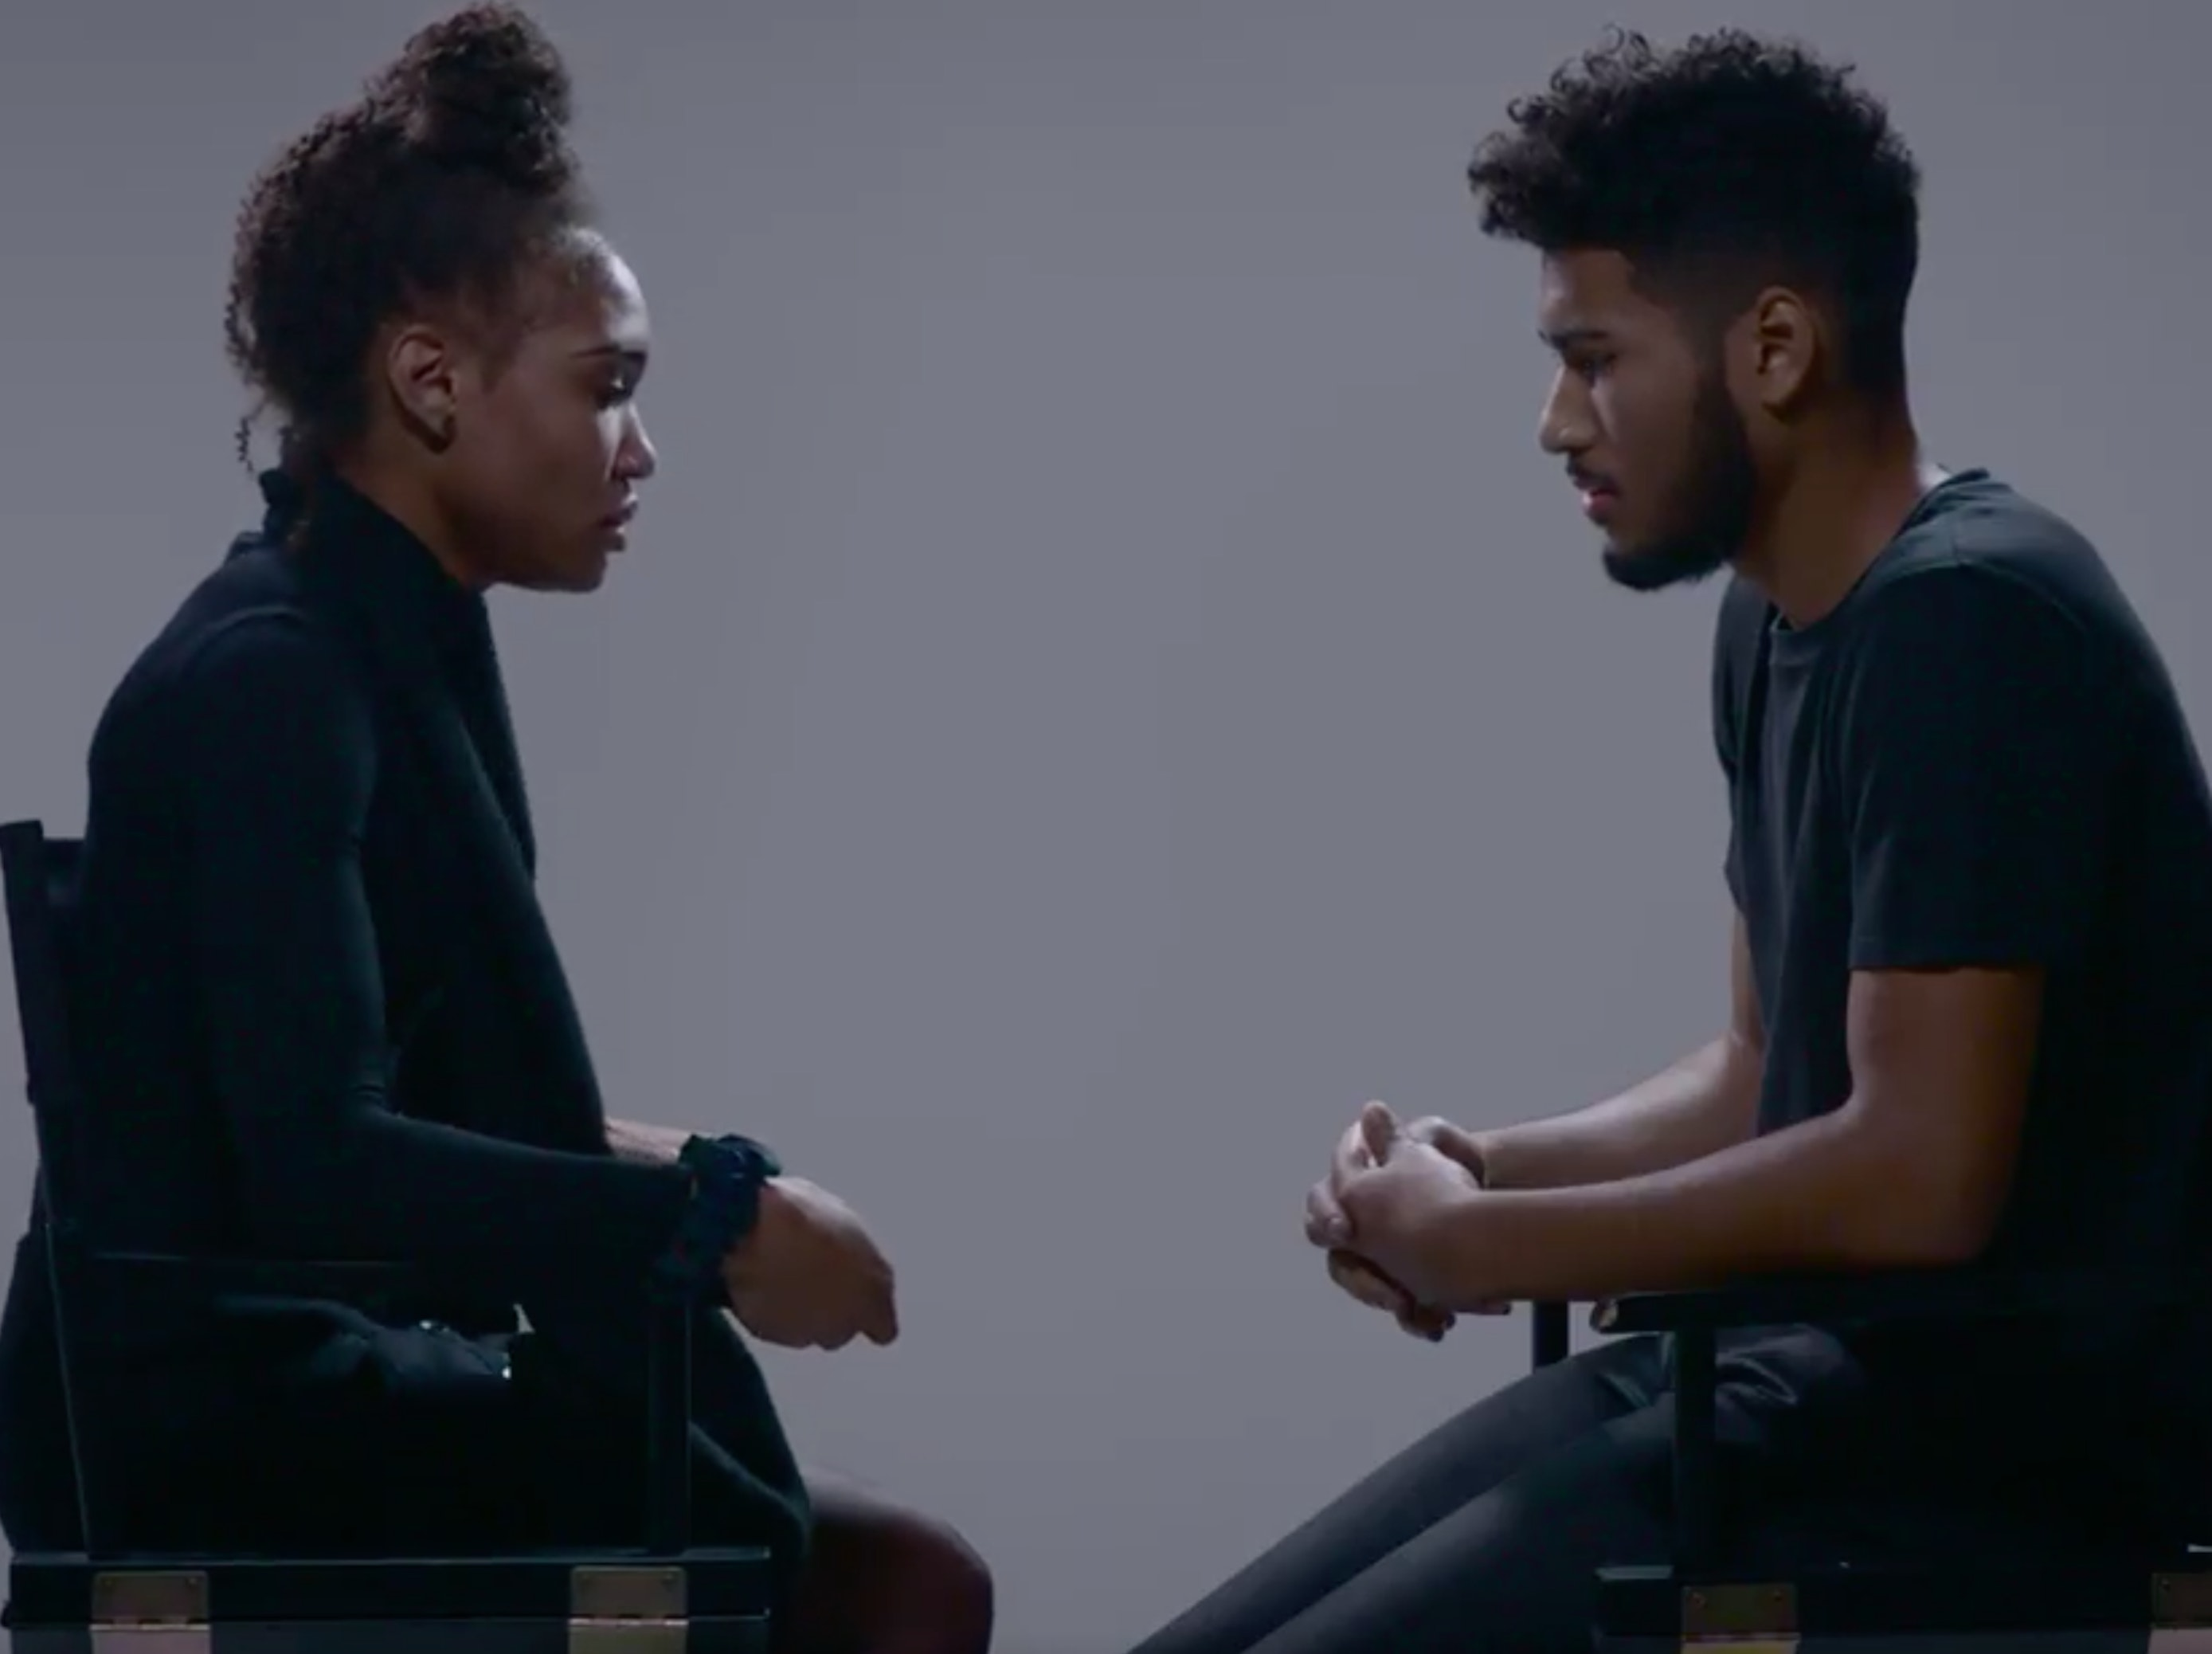 The hashtag #Hurtbae is trending.